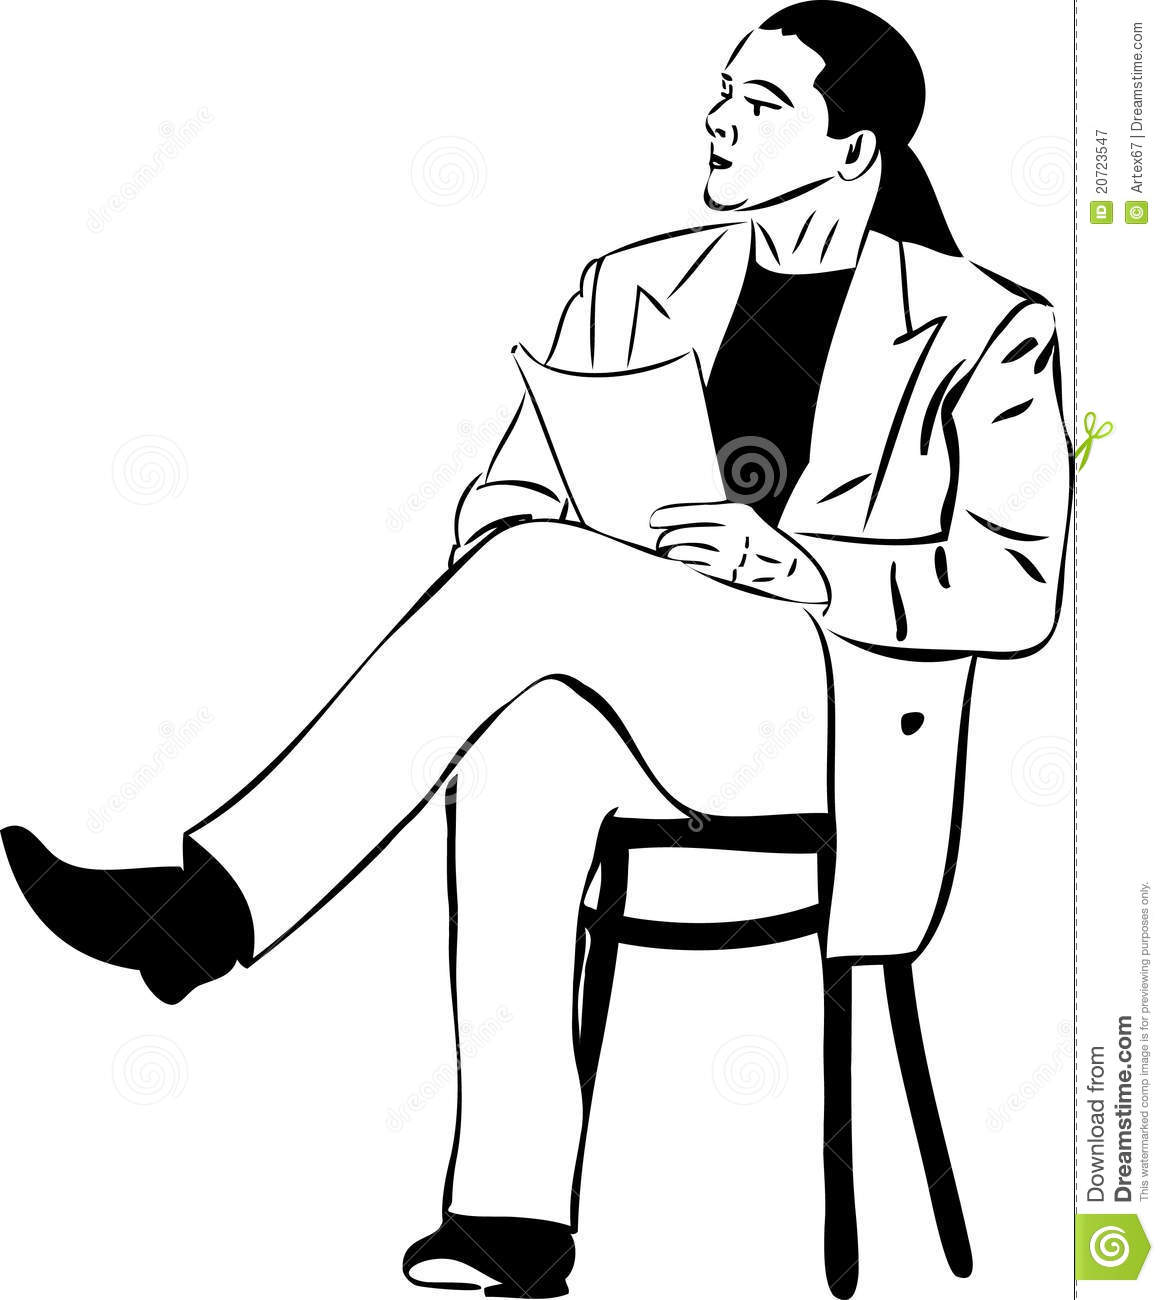 Clipart man in chair reading book picture free download Clipart man sitting in chair - ClipartFest picture free download